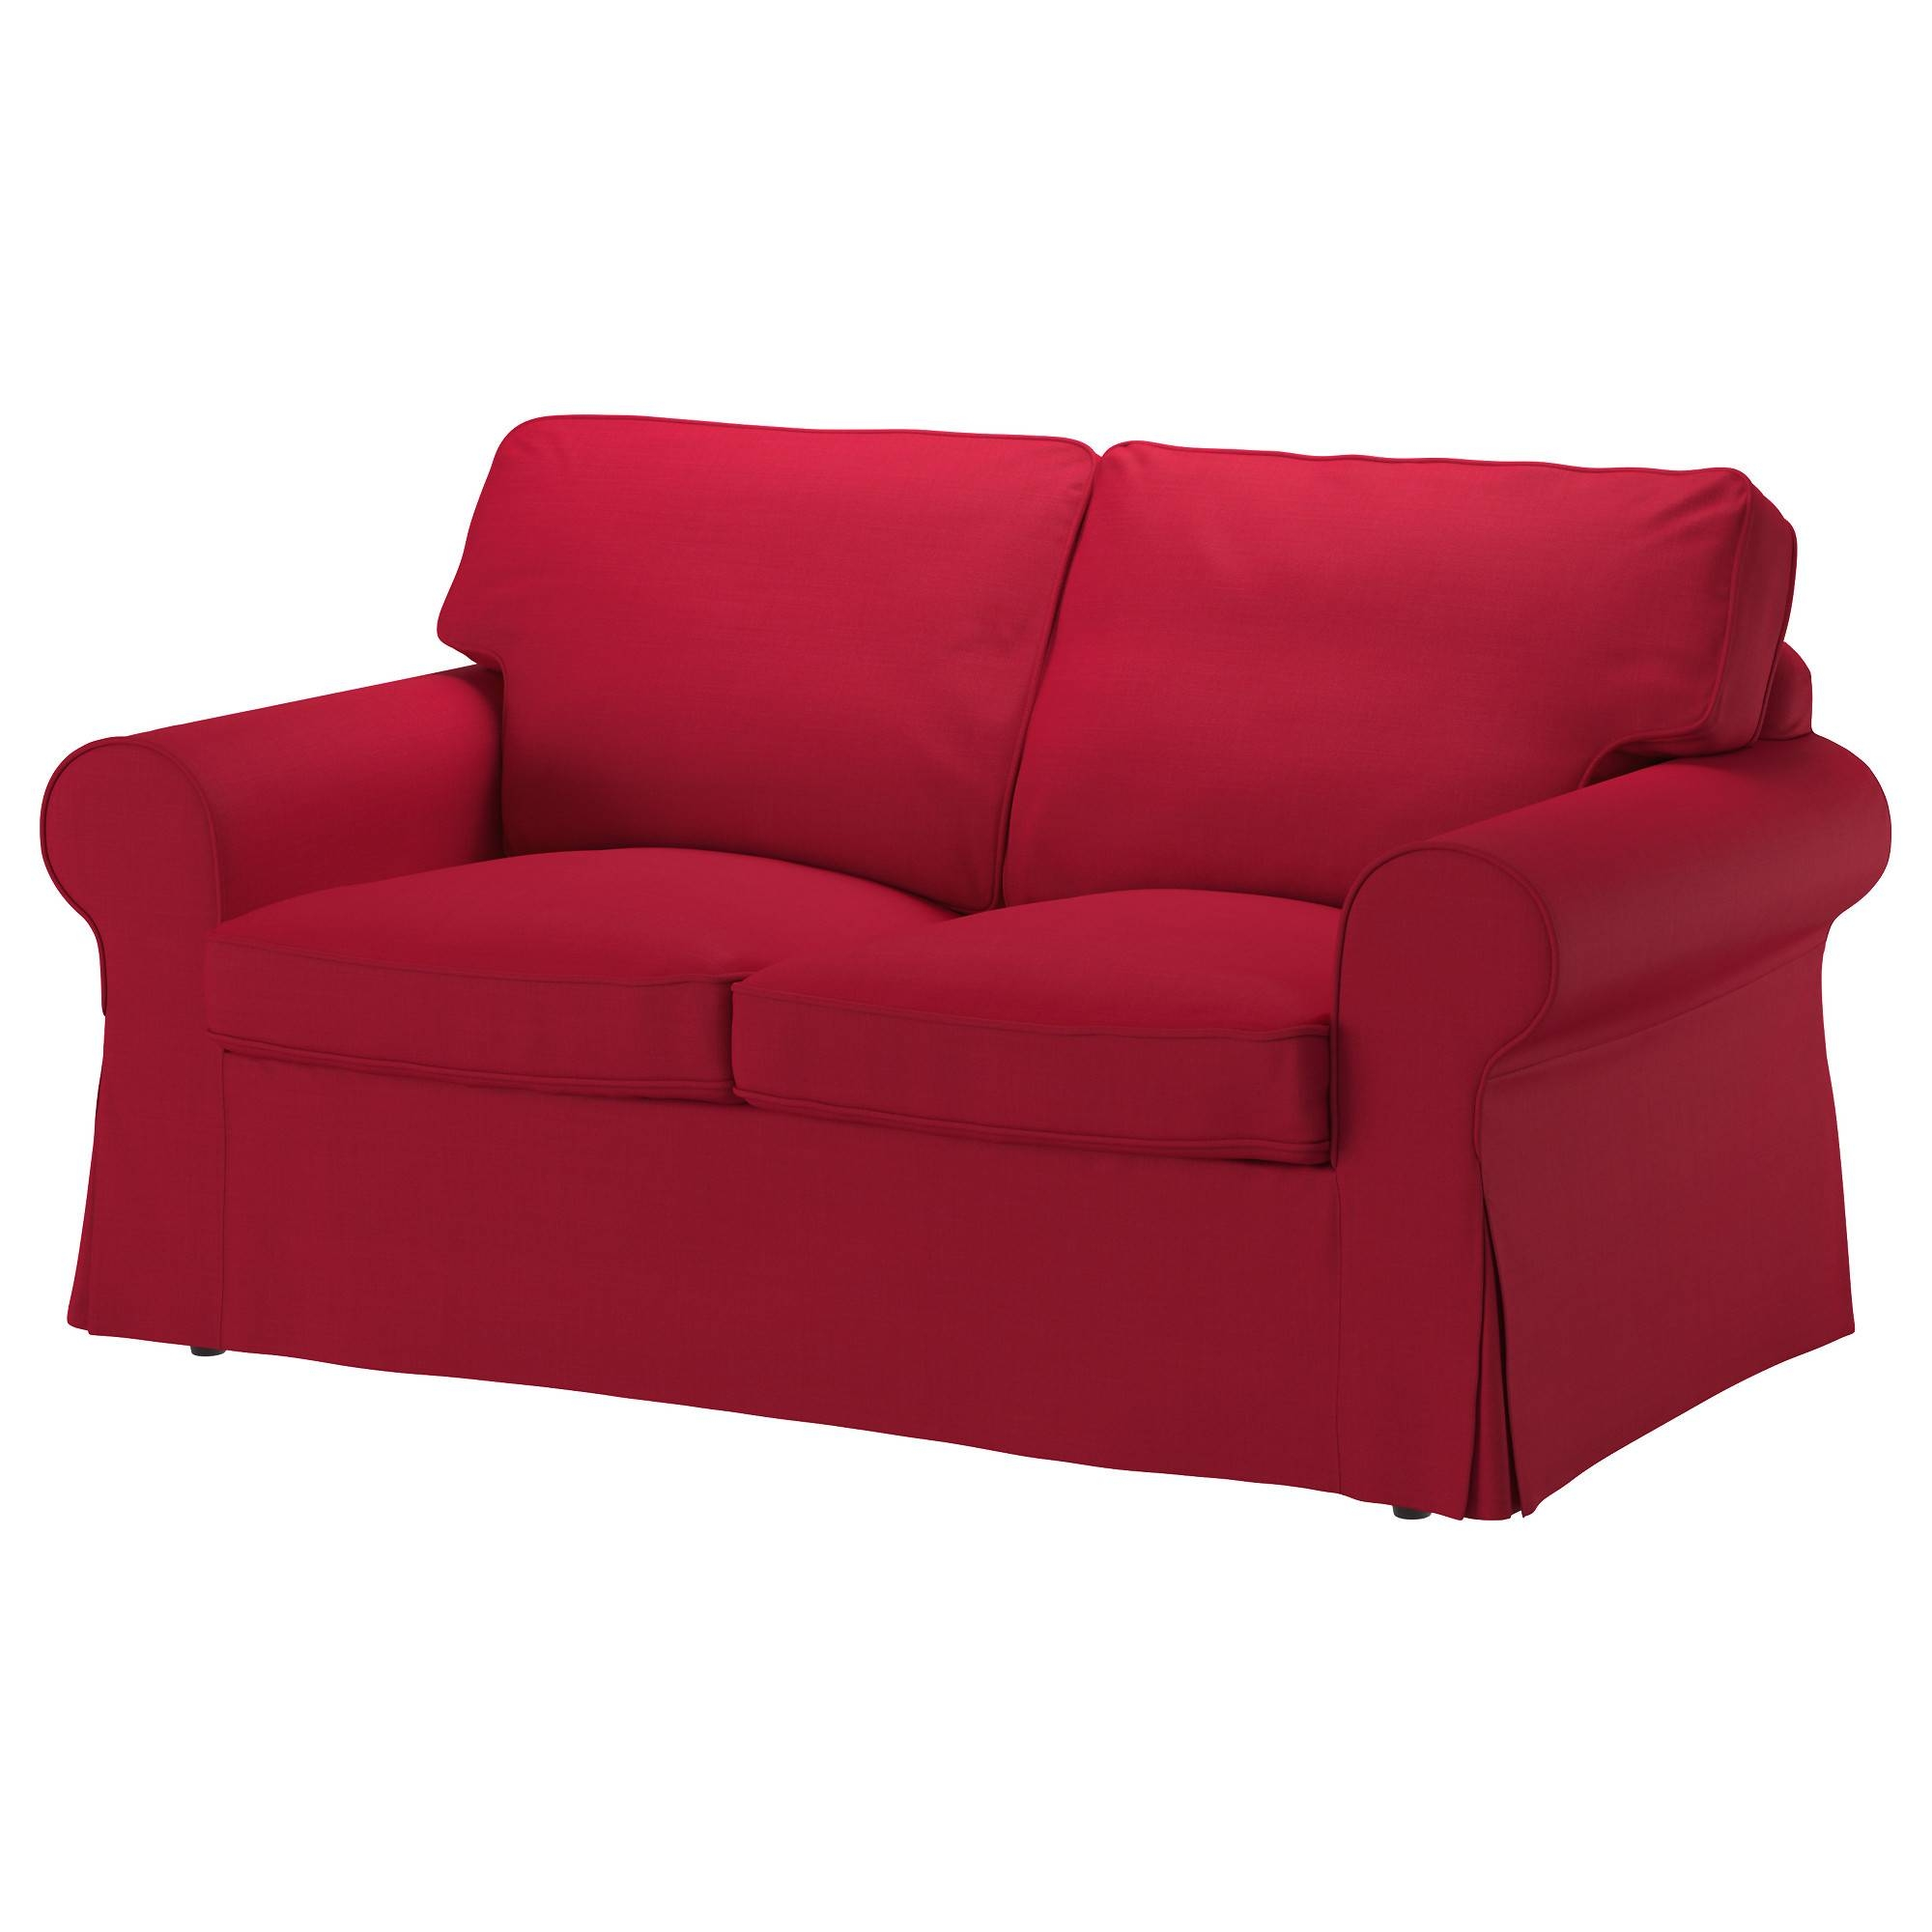 ikea red sofa covers throws indian 2018 latest beds